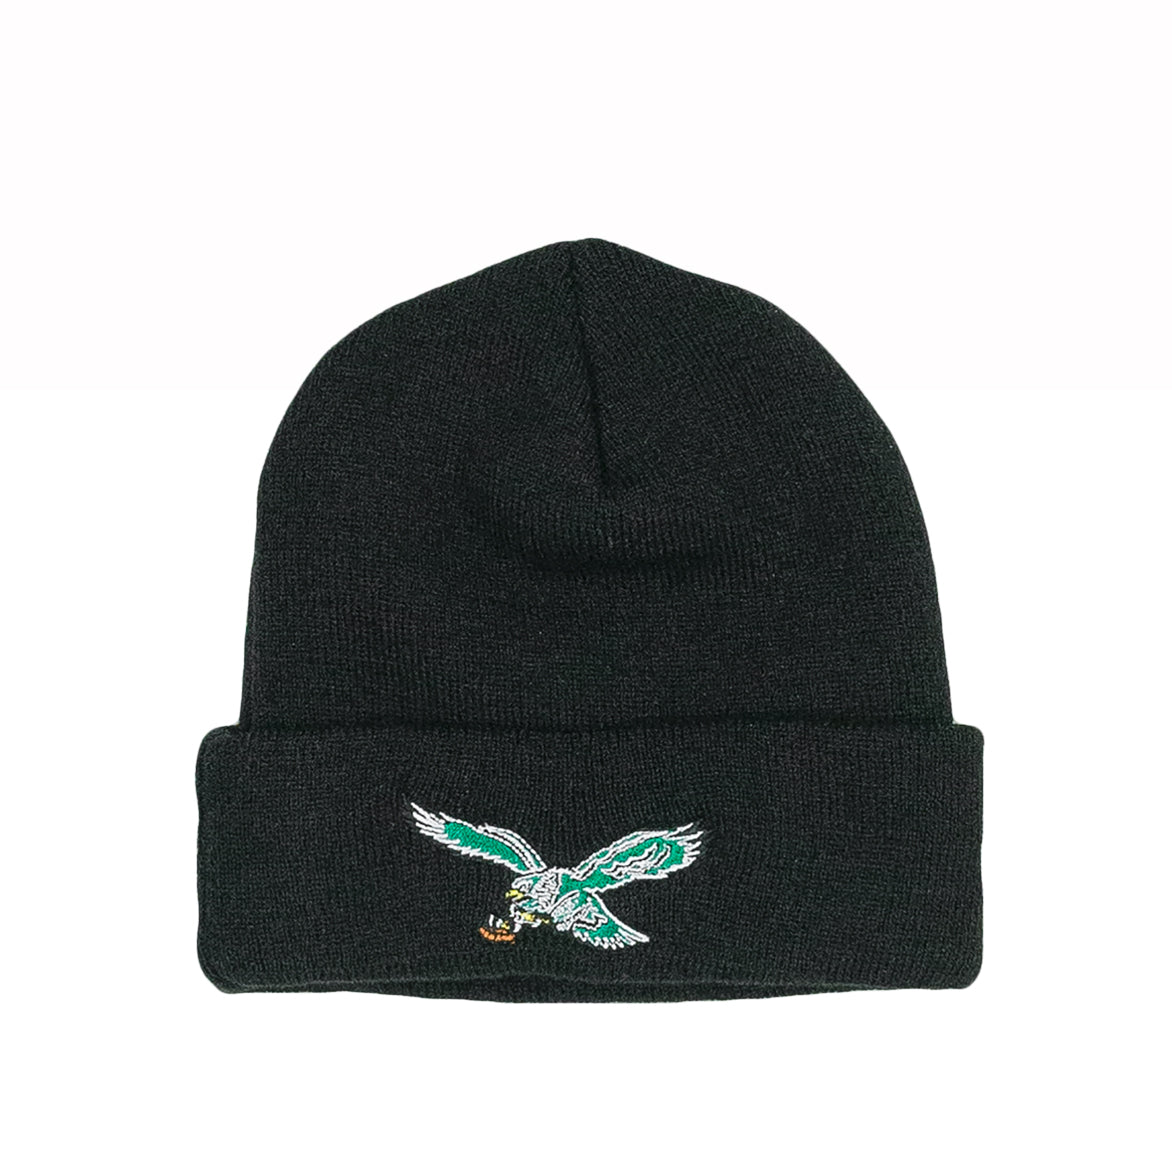 PHILADELPHIA EAGLES THROWBACK SKULLY - BLACK